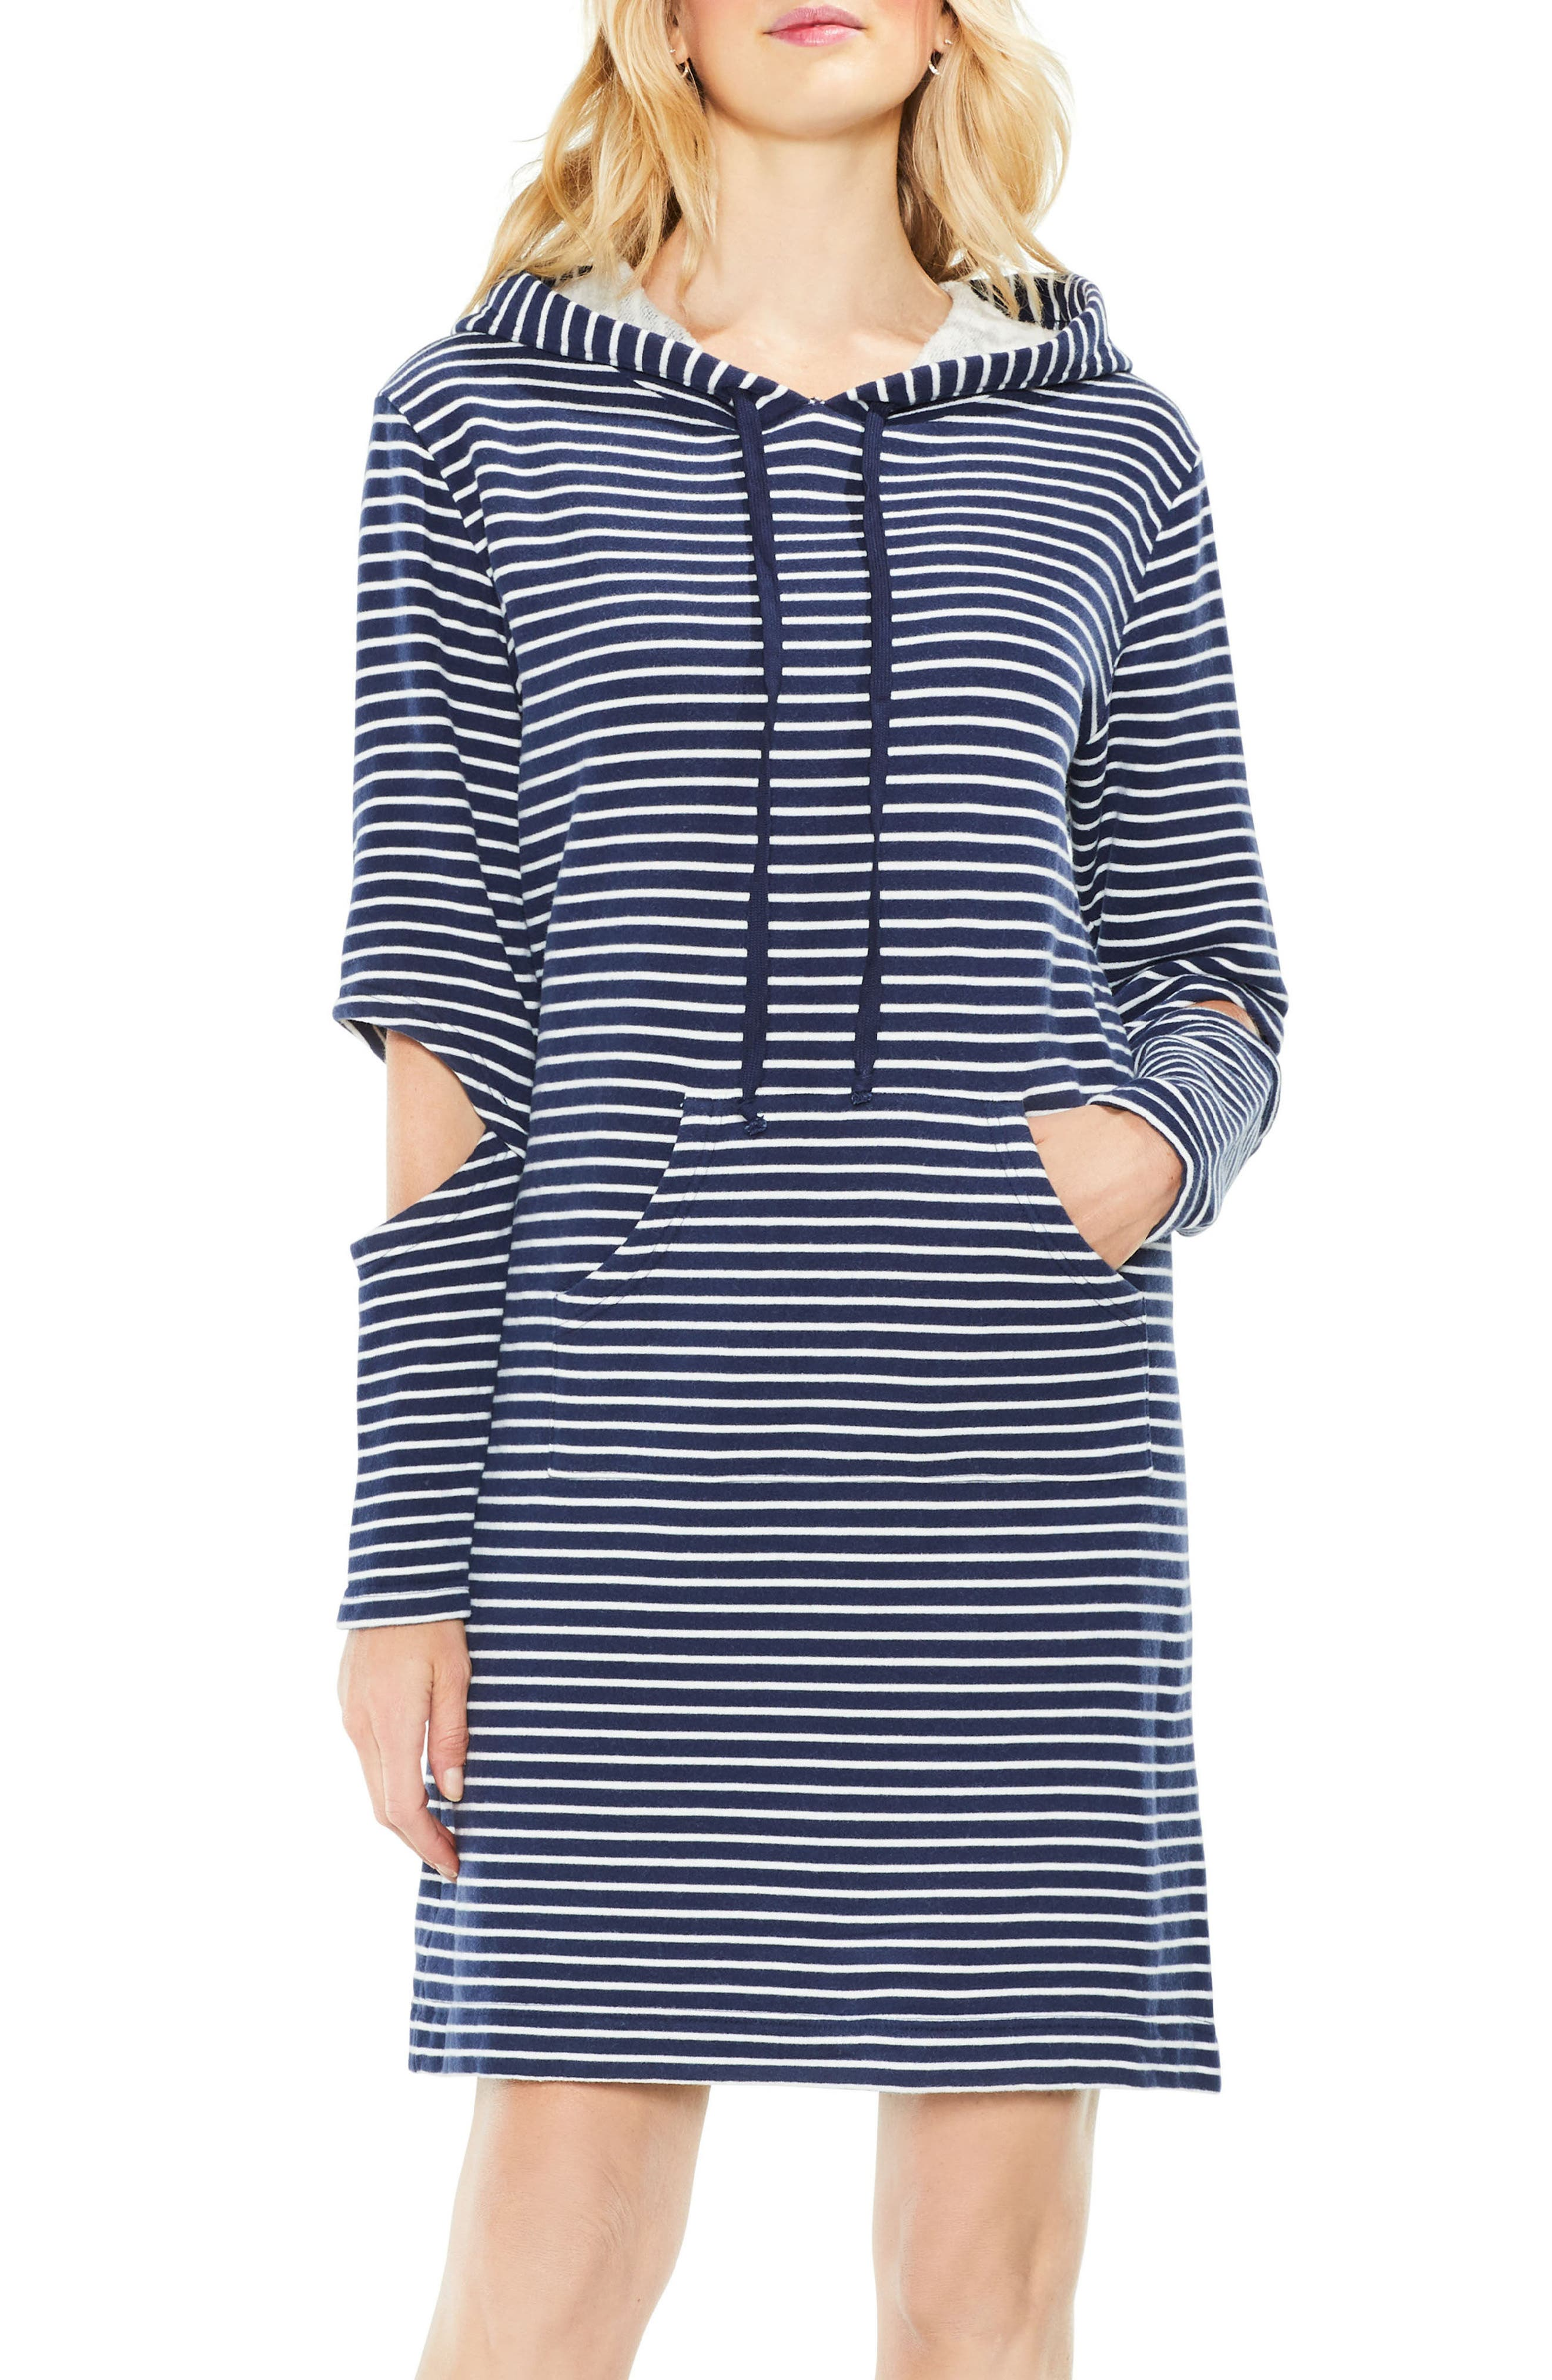 Main Image - Two by Vince Camuto Daydream Stripe Hooded Dress